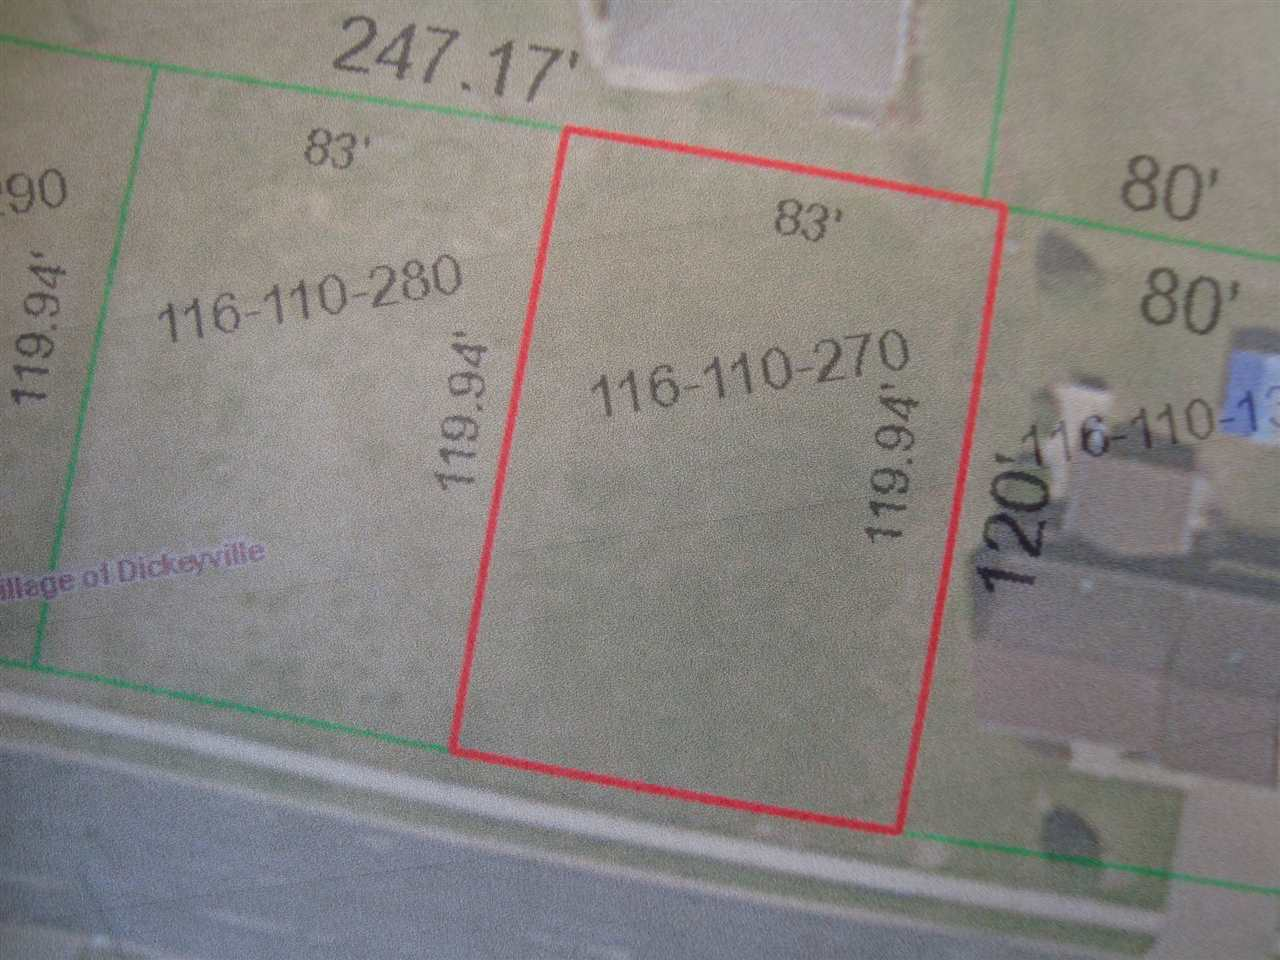 L1 Park St, Dickeyville, WI 53808